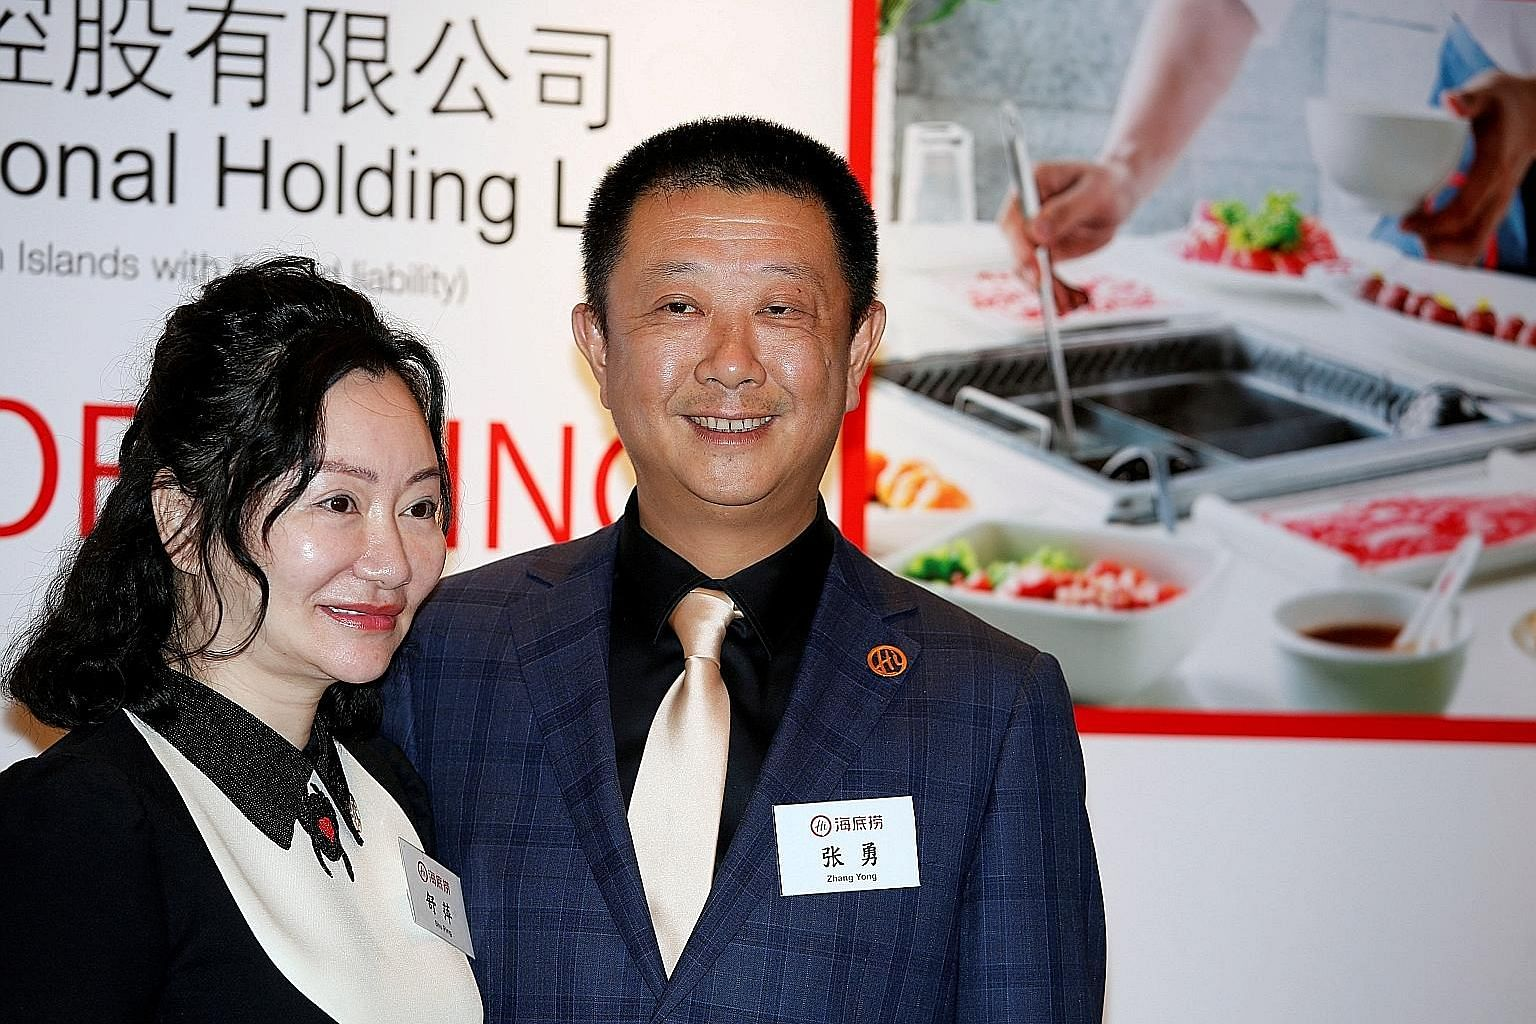 Ms Shu Ping, seen here with her husband, Mr Zhang Yong, is the sole shareholder and director of the new family office, Sunrise Capital Management.